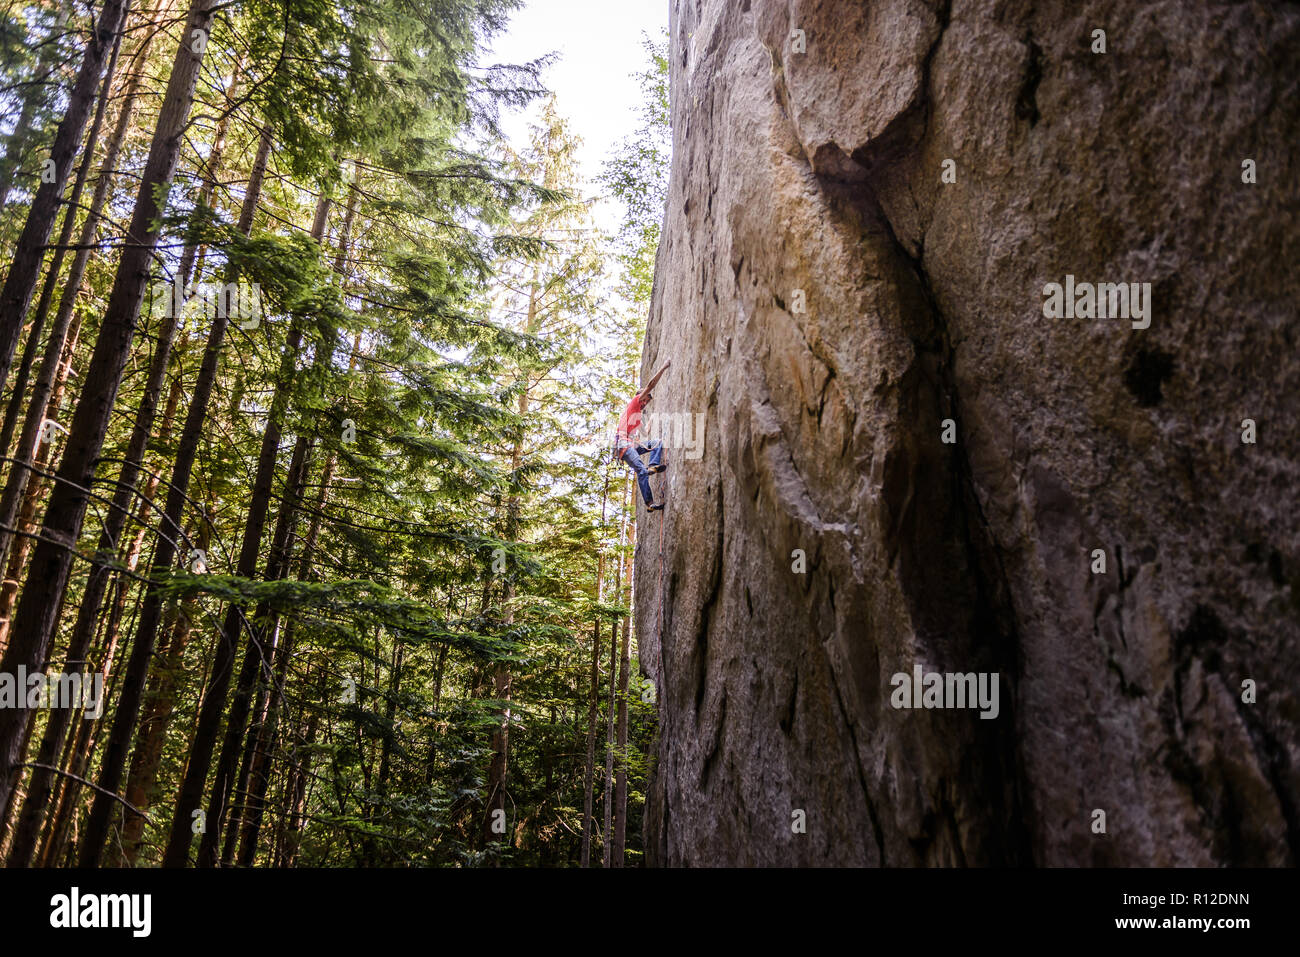 Rock climber scaling rock face close to trees, Squamish, Canada - Stock Image